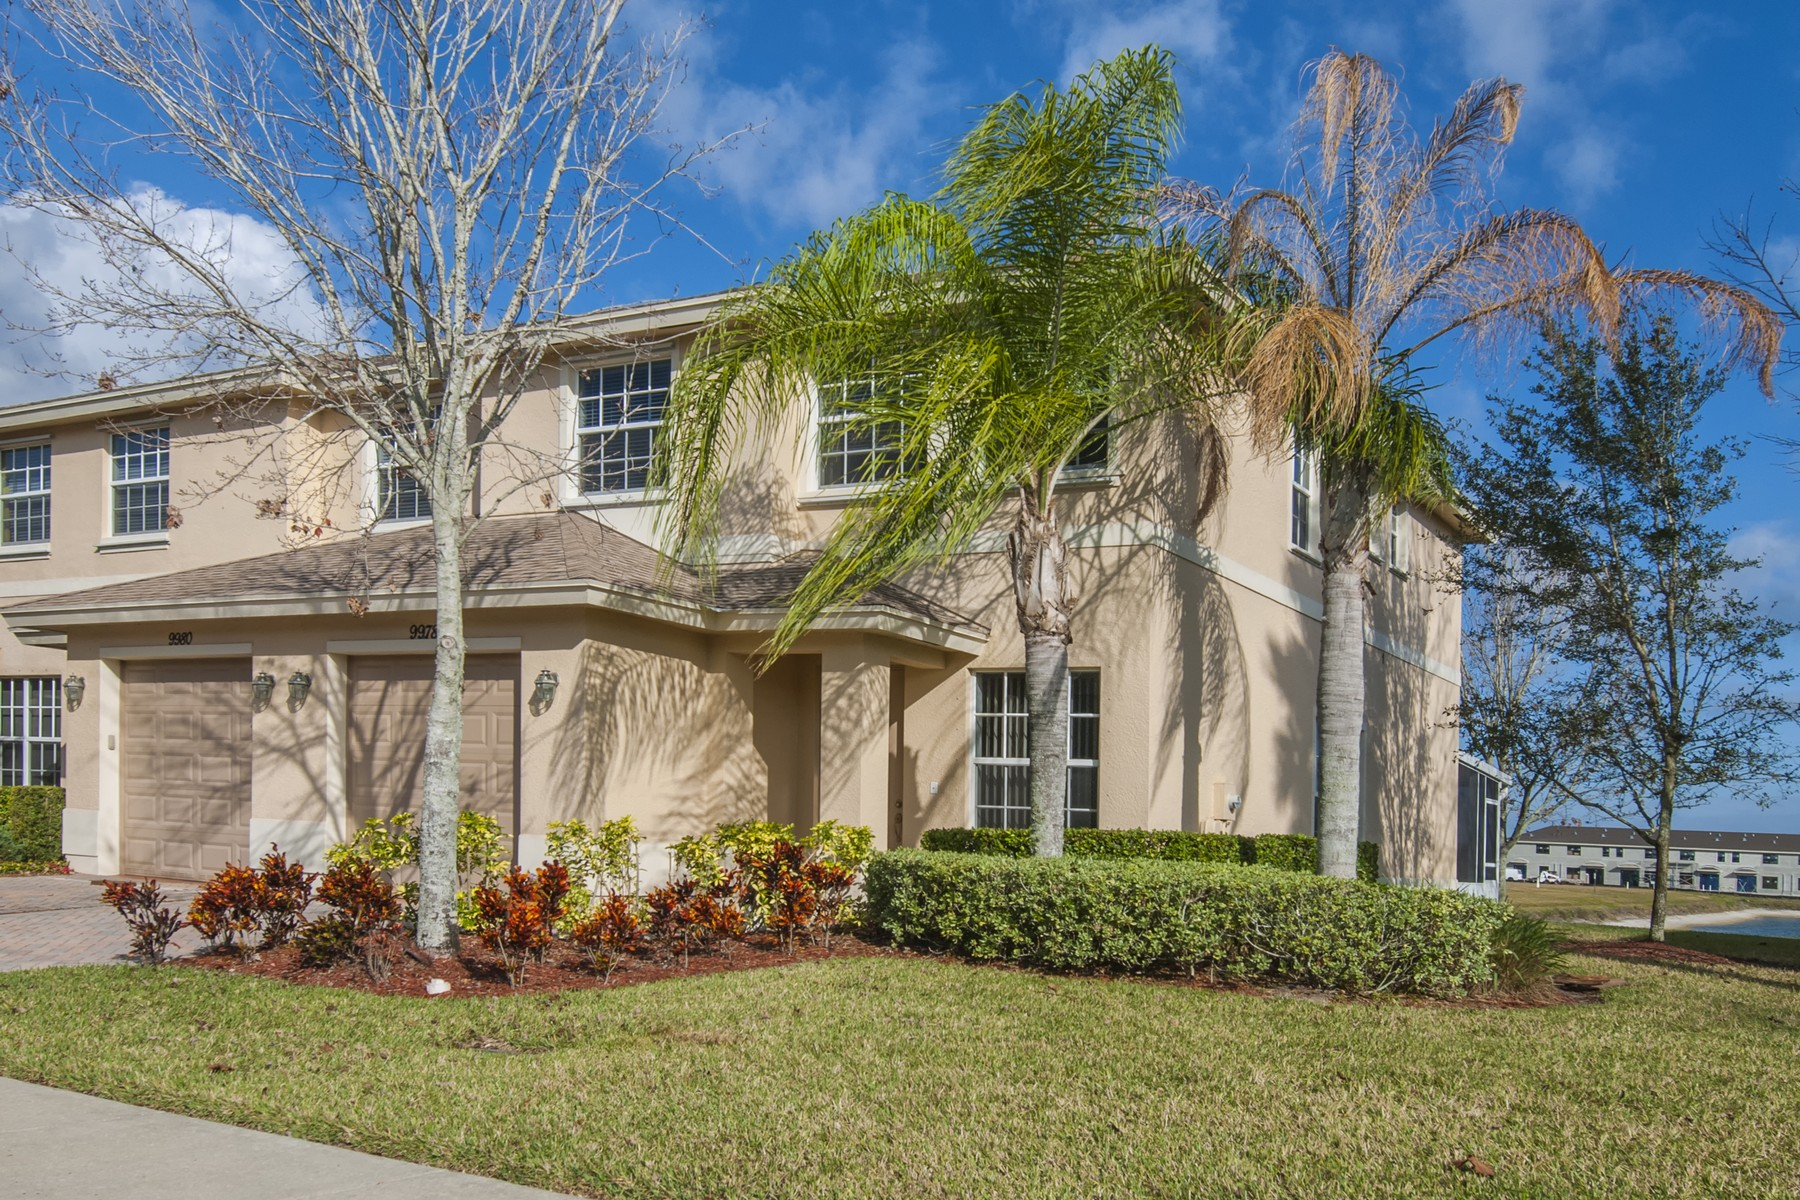 Townhouse for Sale at Bright and Cheery Townhome 9978 E Villa Circle Vero Beach, Florida 32966 United States